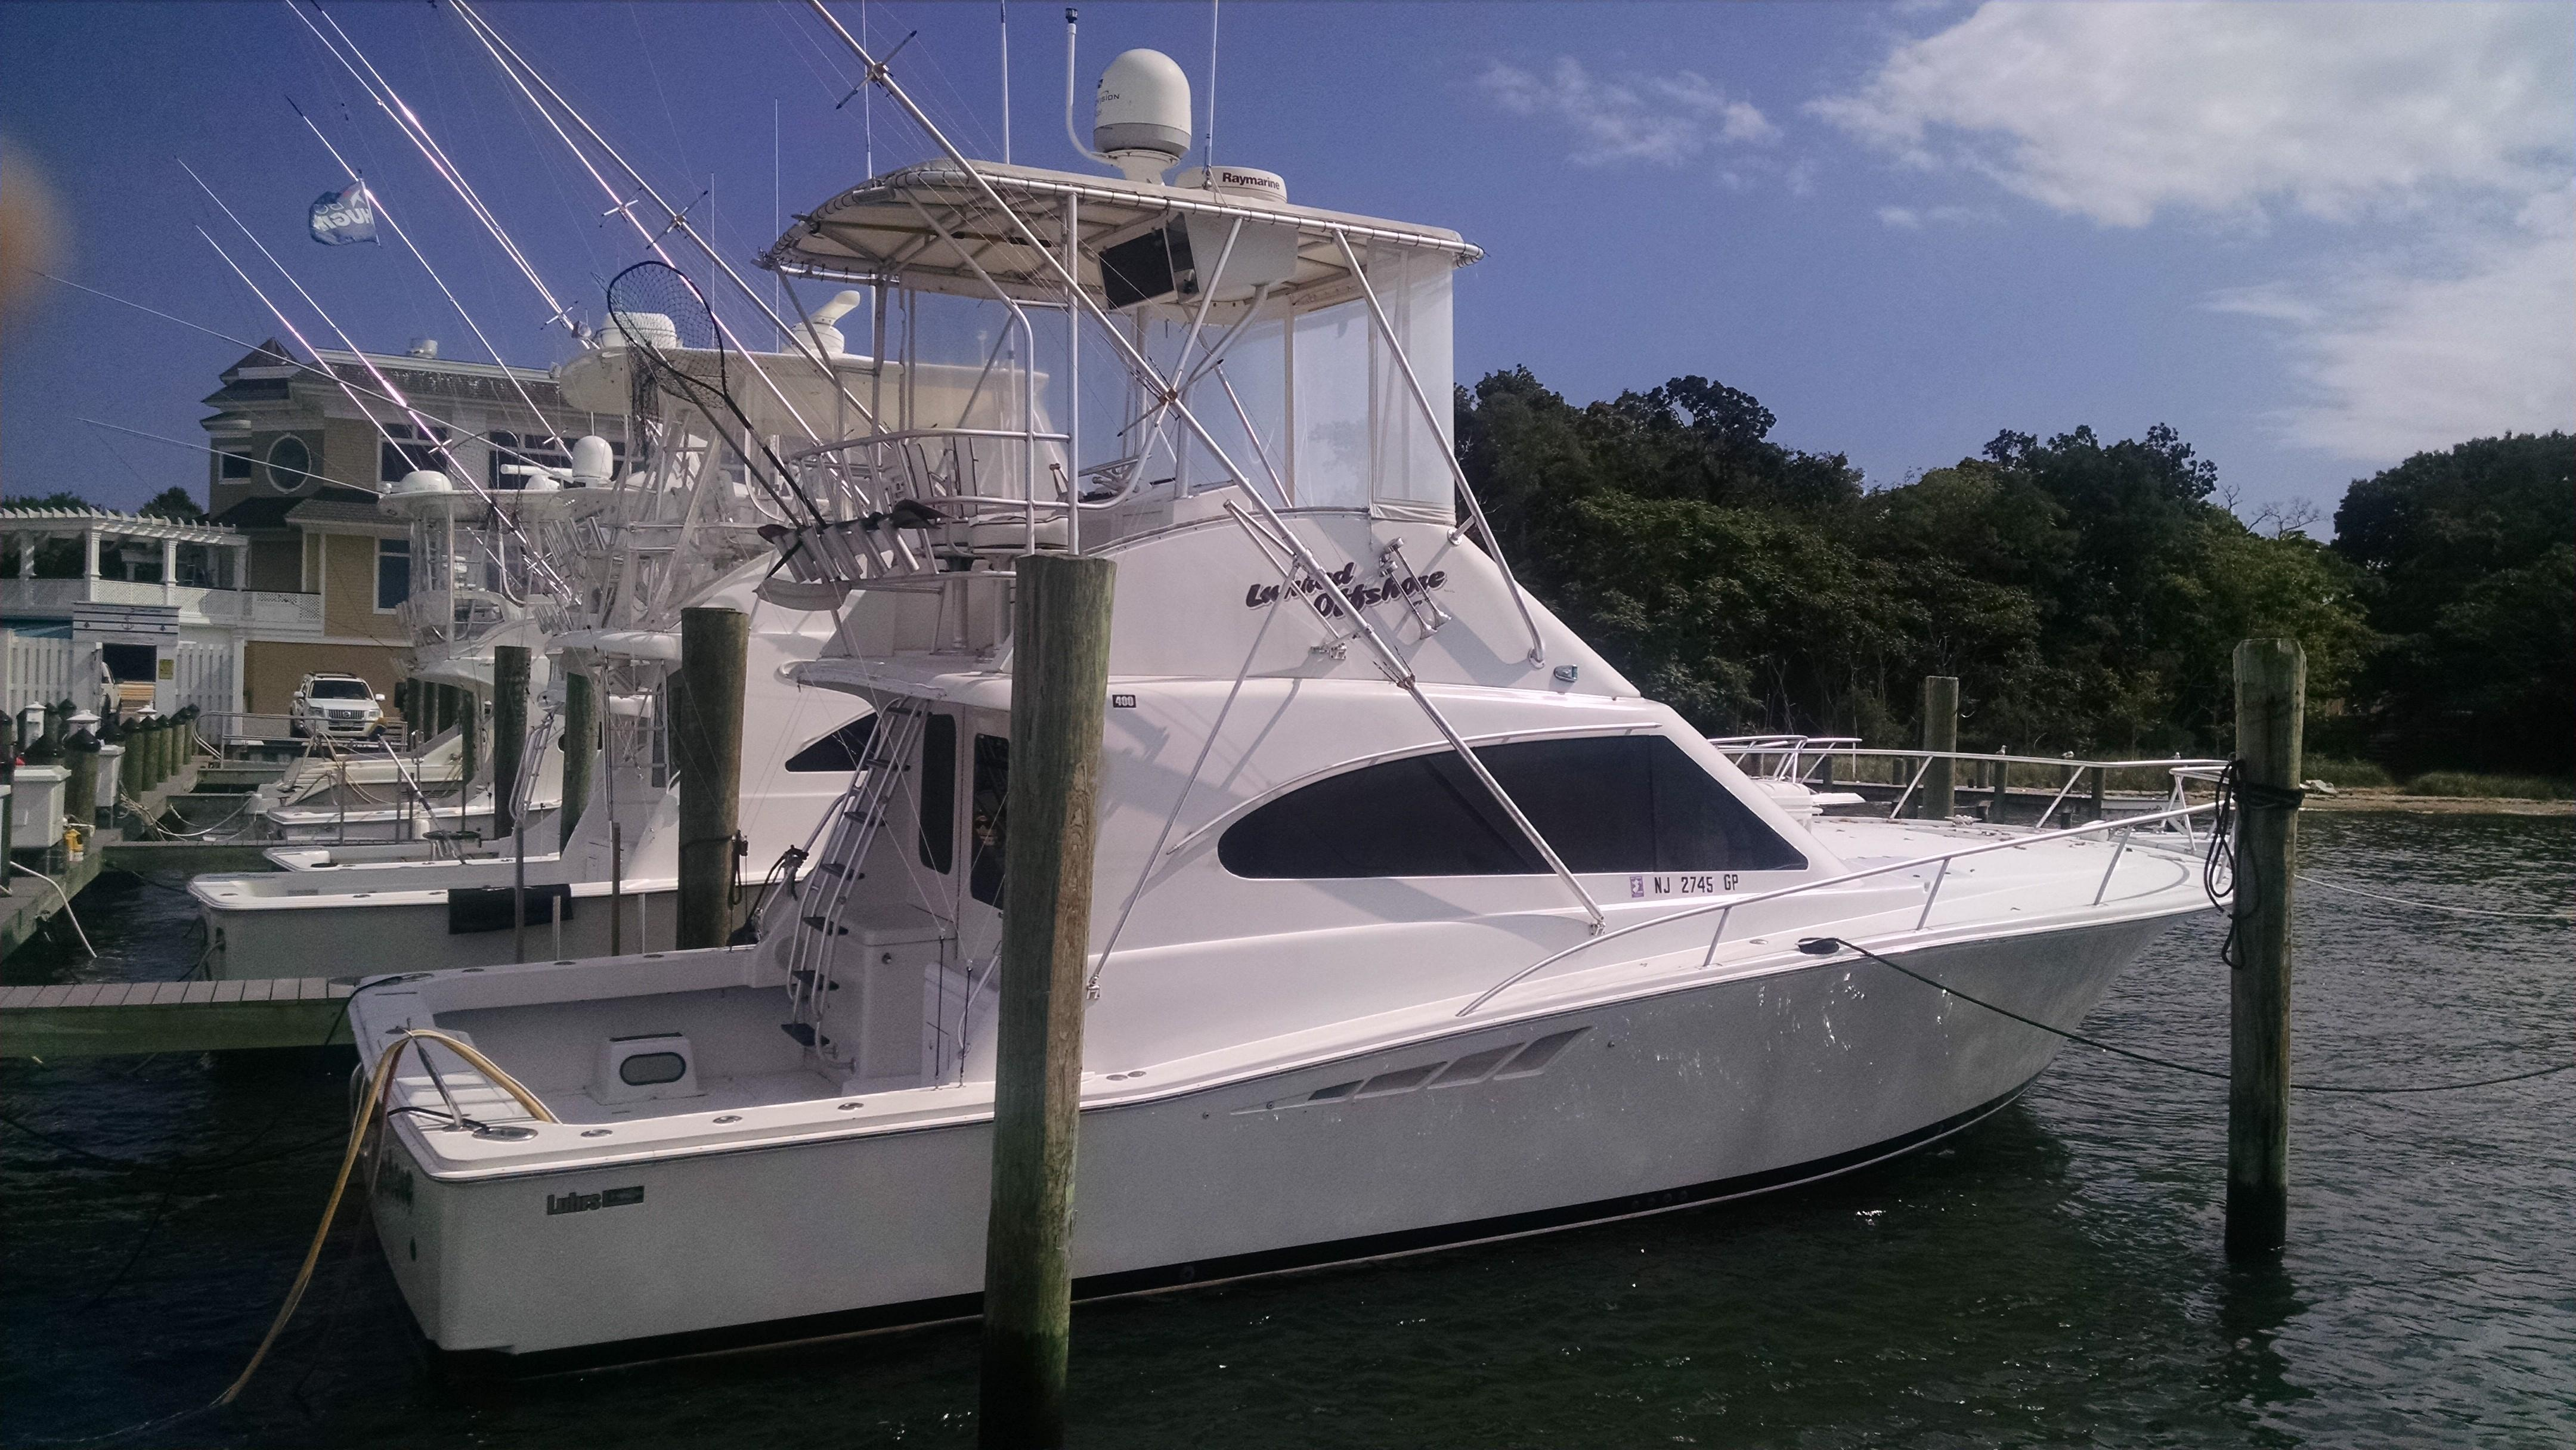 luhrs motor boats for sale new england powerboat brokers 1962 Foot Luhrs  Boats 24Ft Luhrs Boat